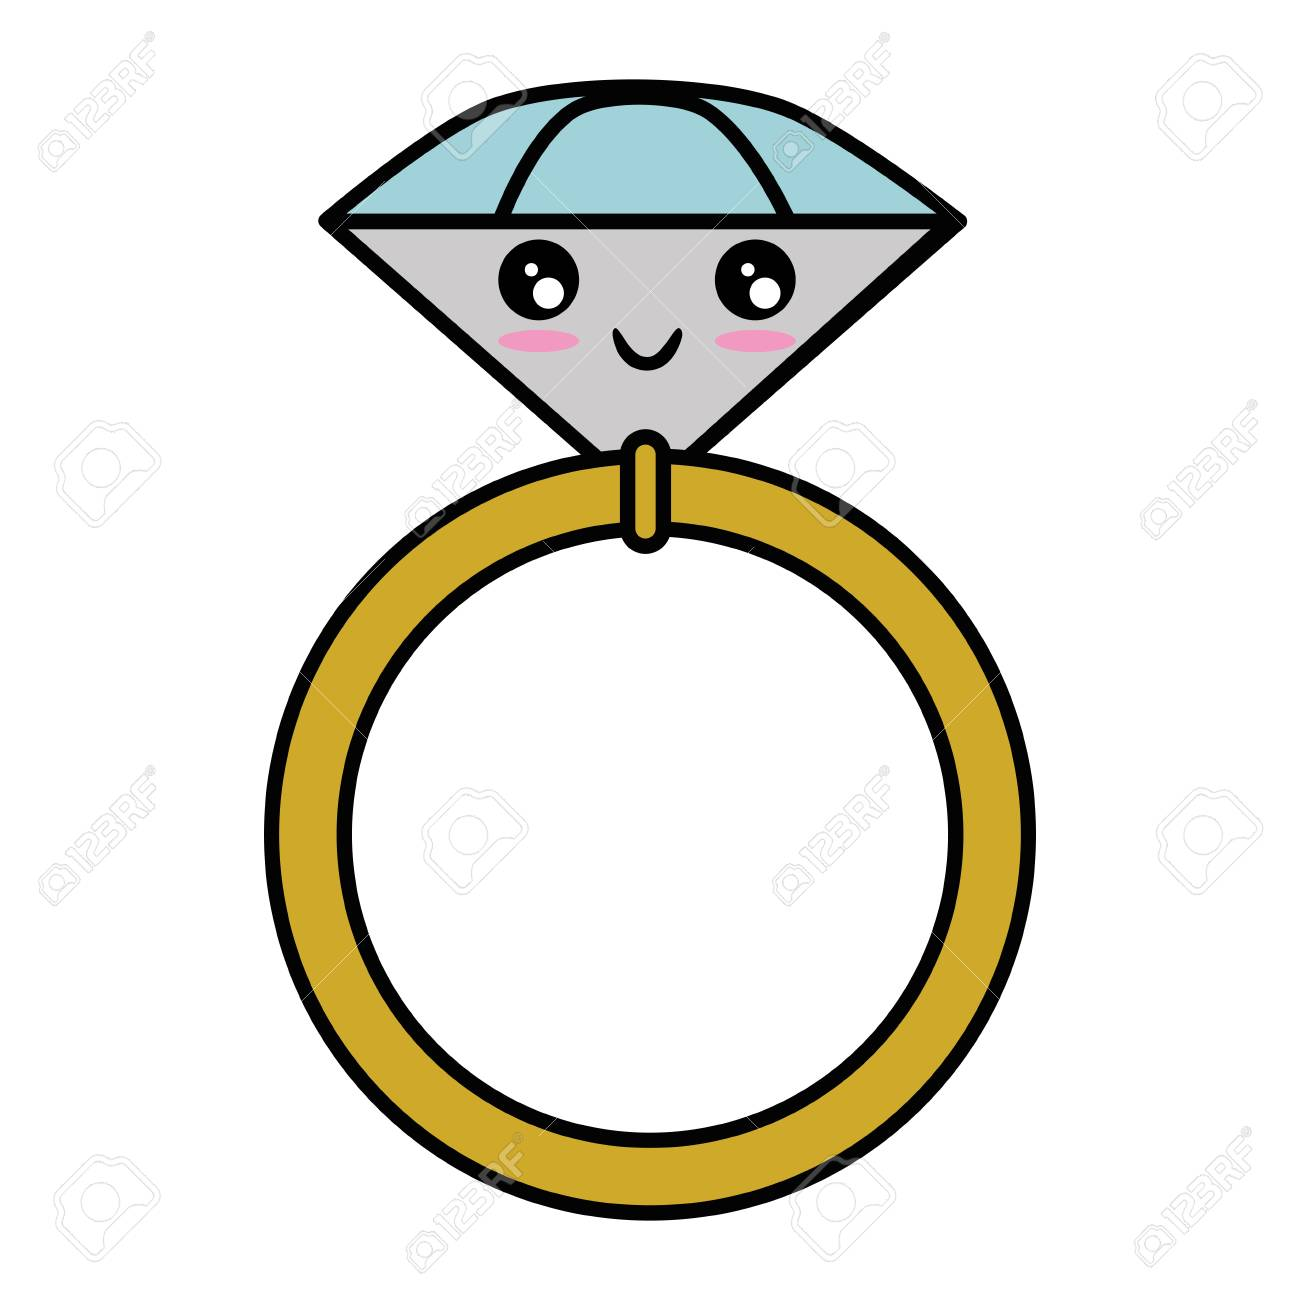 Wedding Ring Isolated Cute Cartoon Vector Illustration Graphic